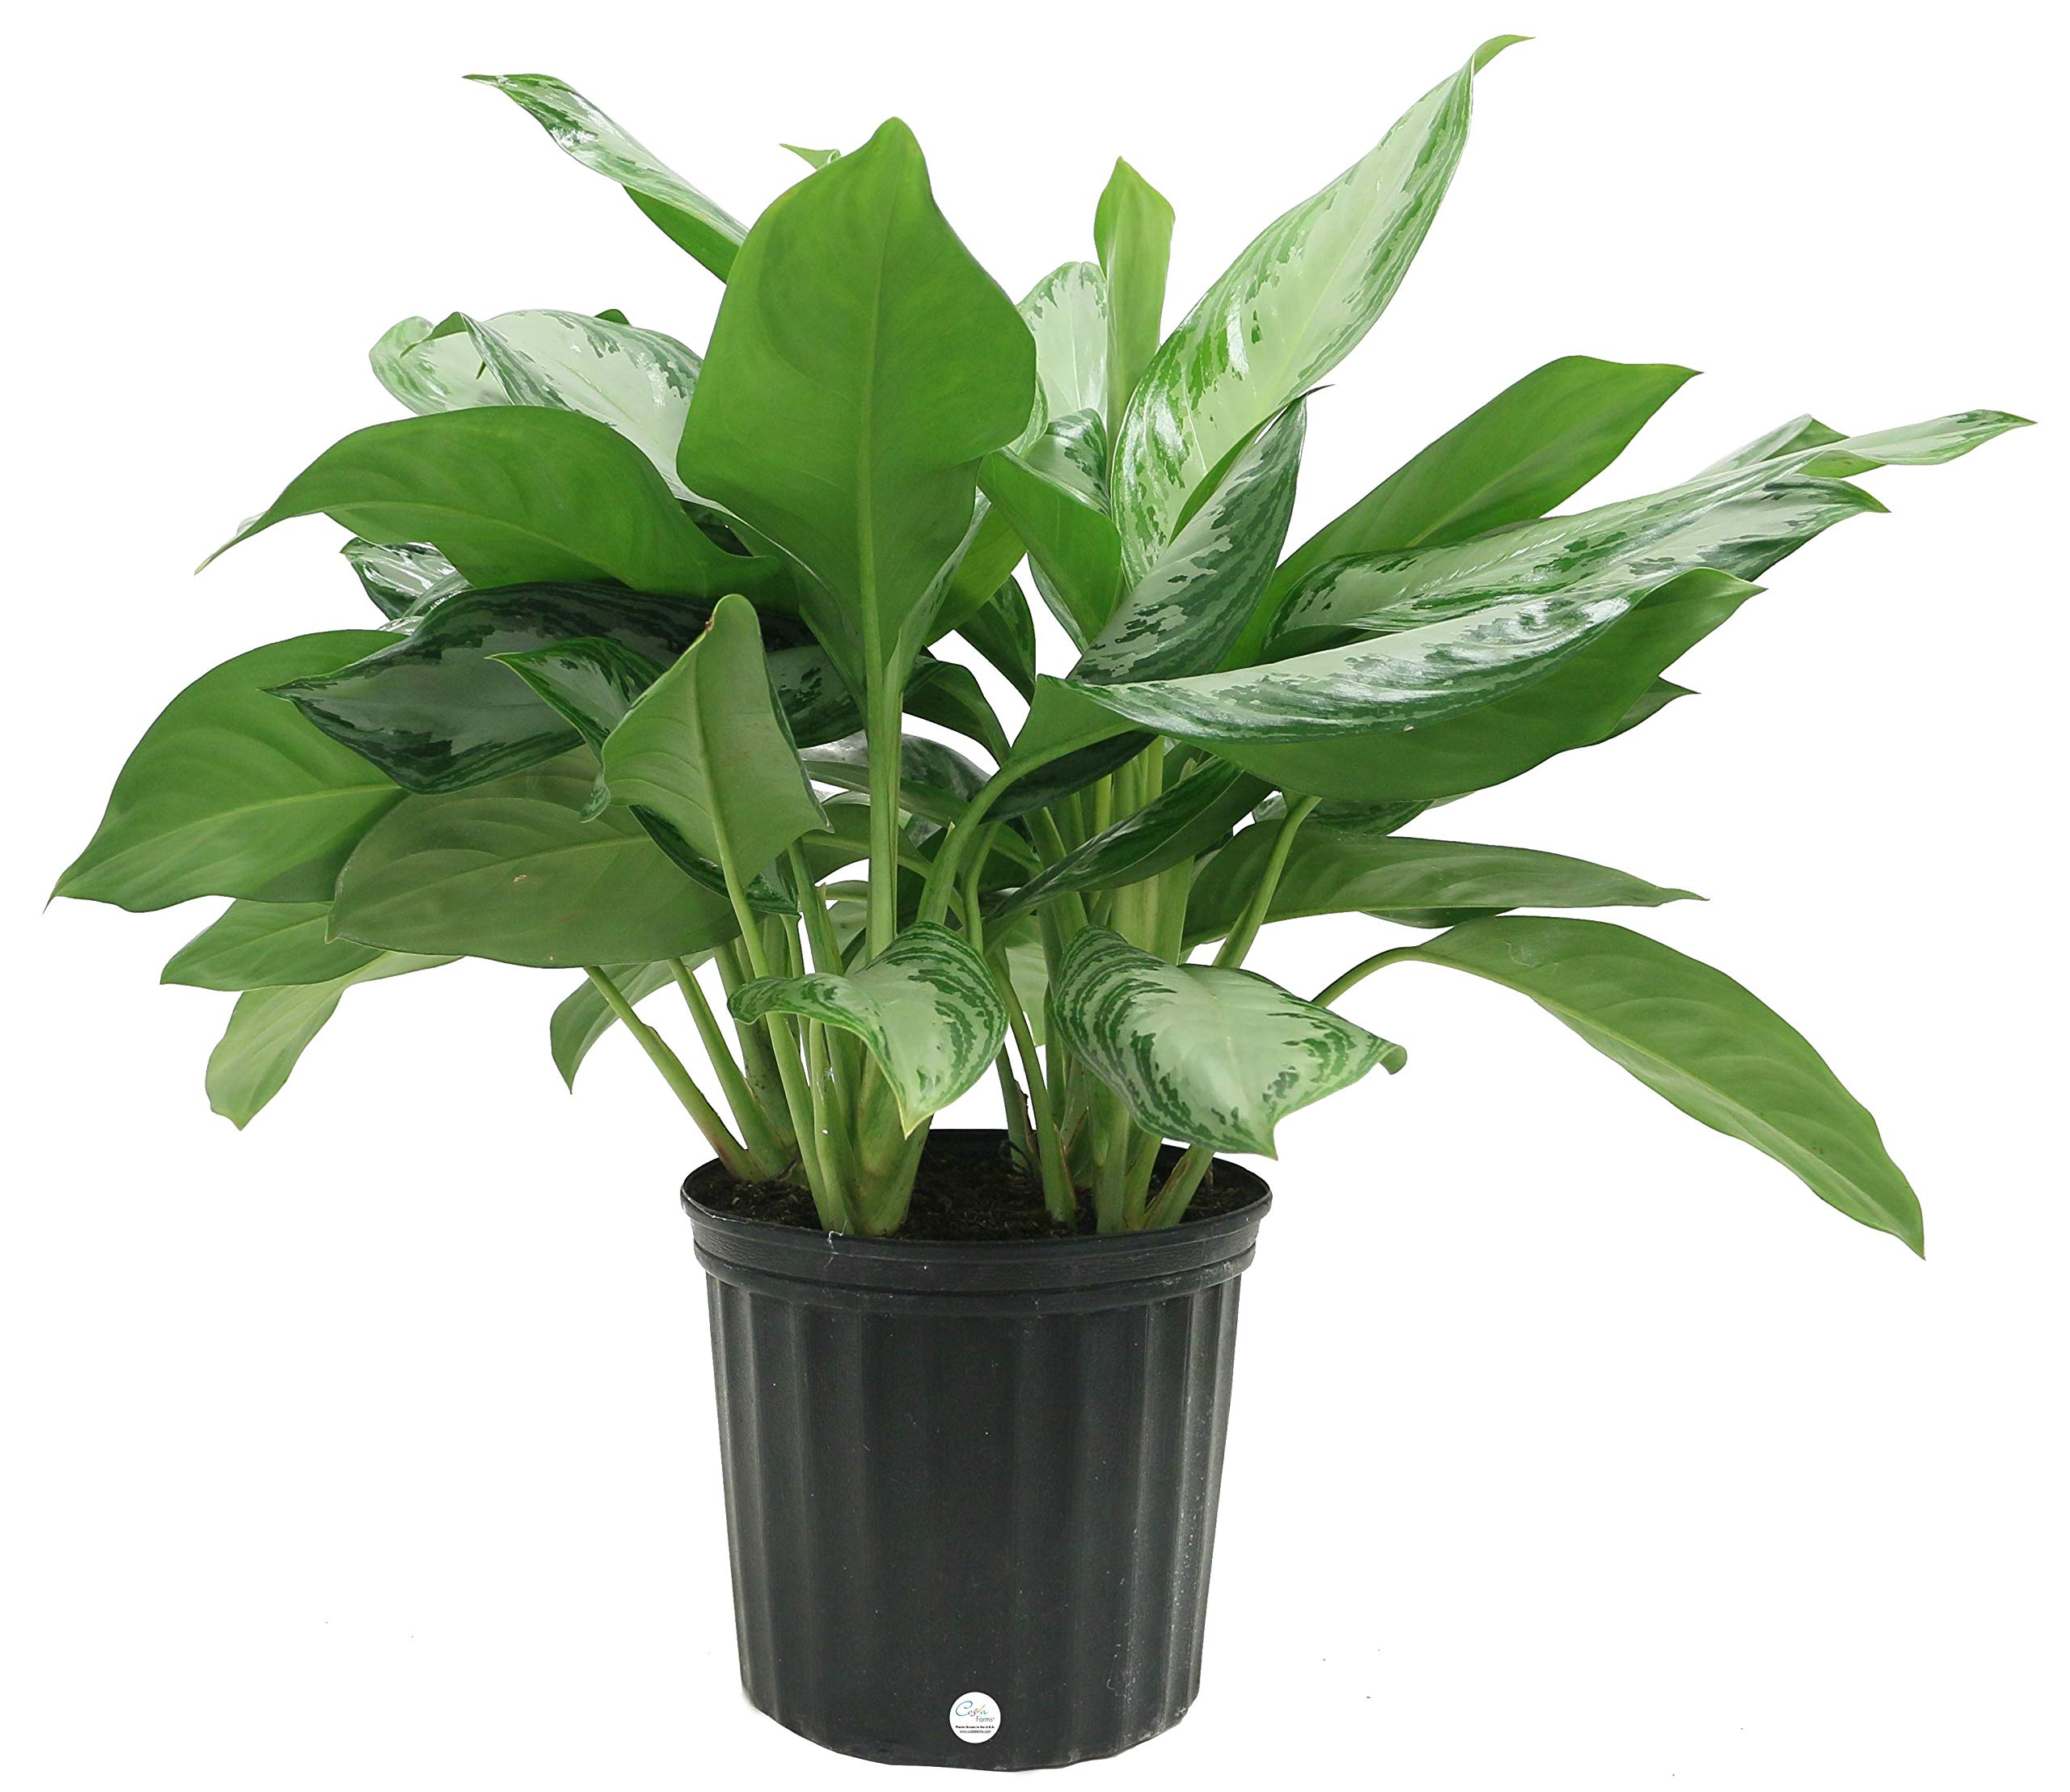 Costa Farms Aglaonema Chinese Evergreen Live Indoor Plant, 30-Inches Tall, Ships in Grower's Pot by Costa Farms